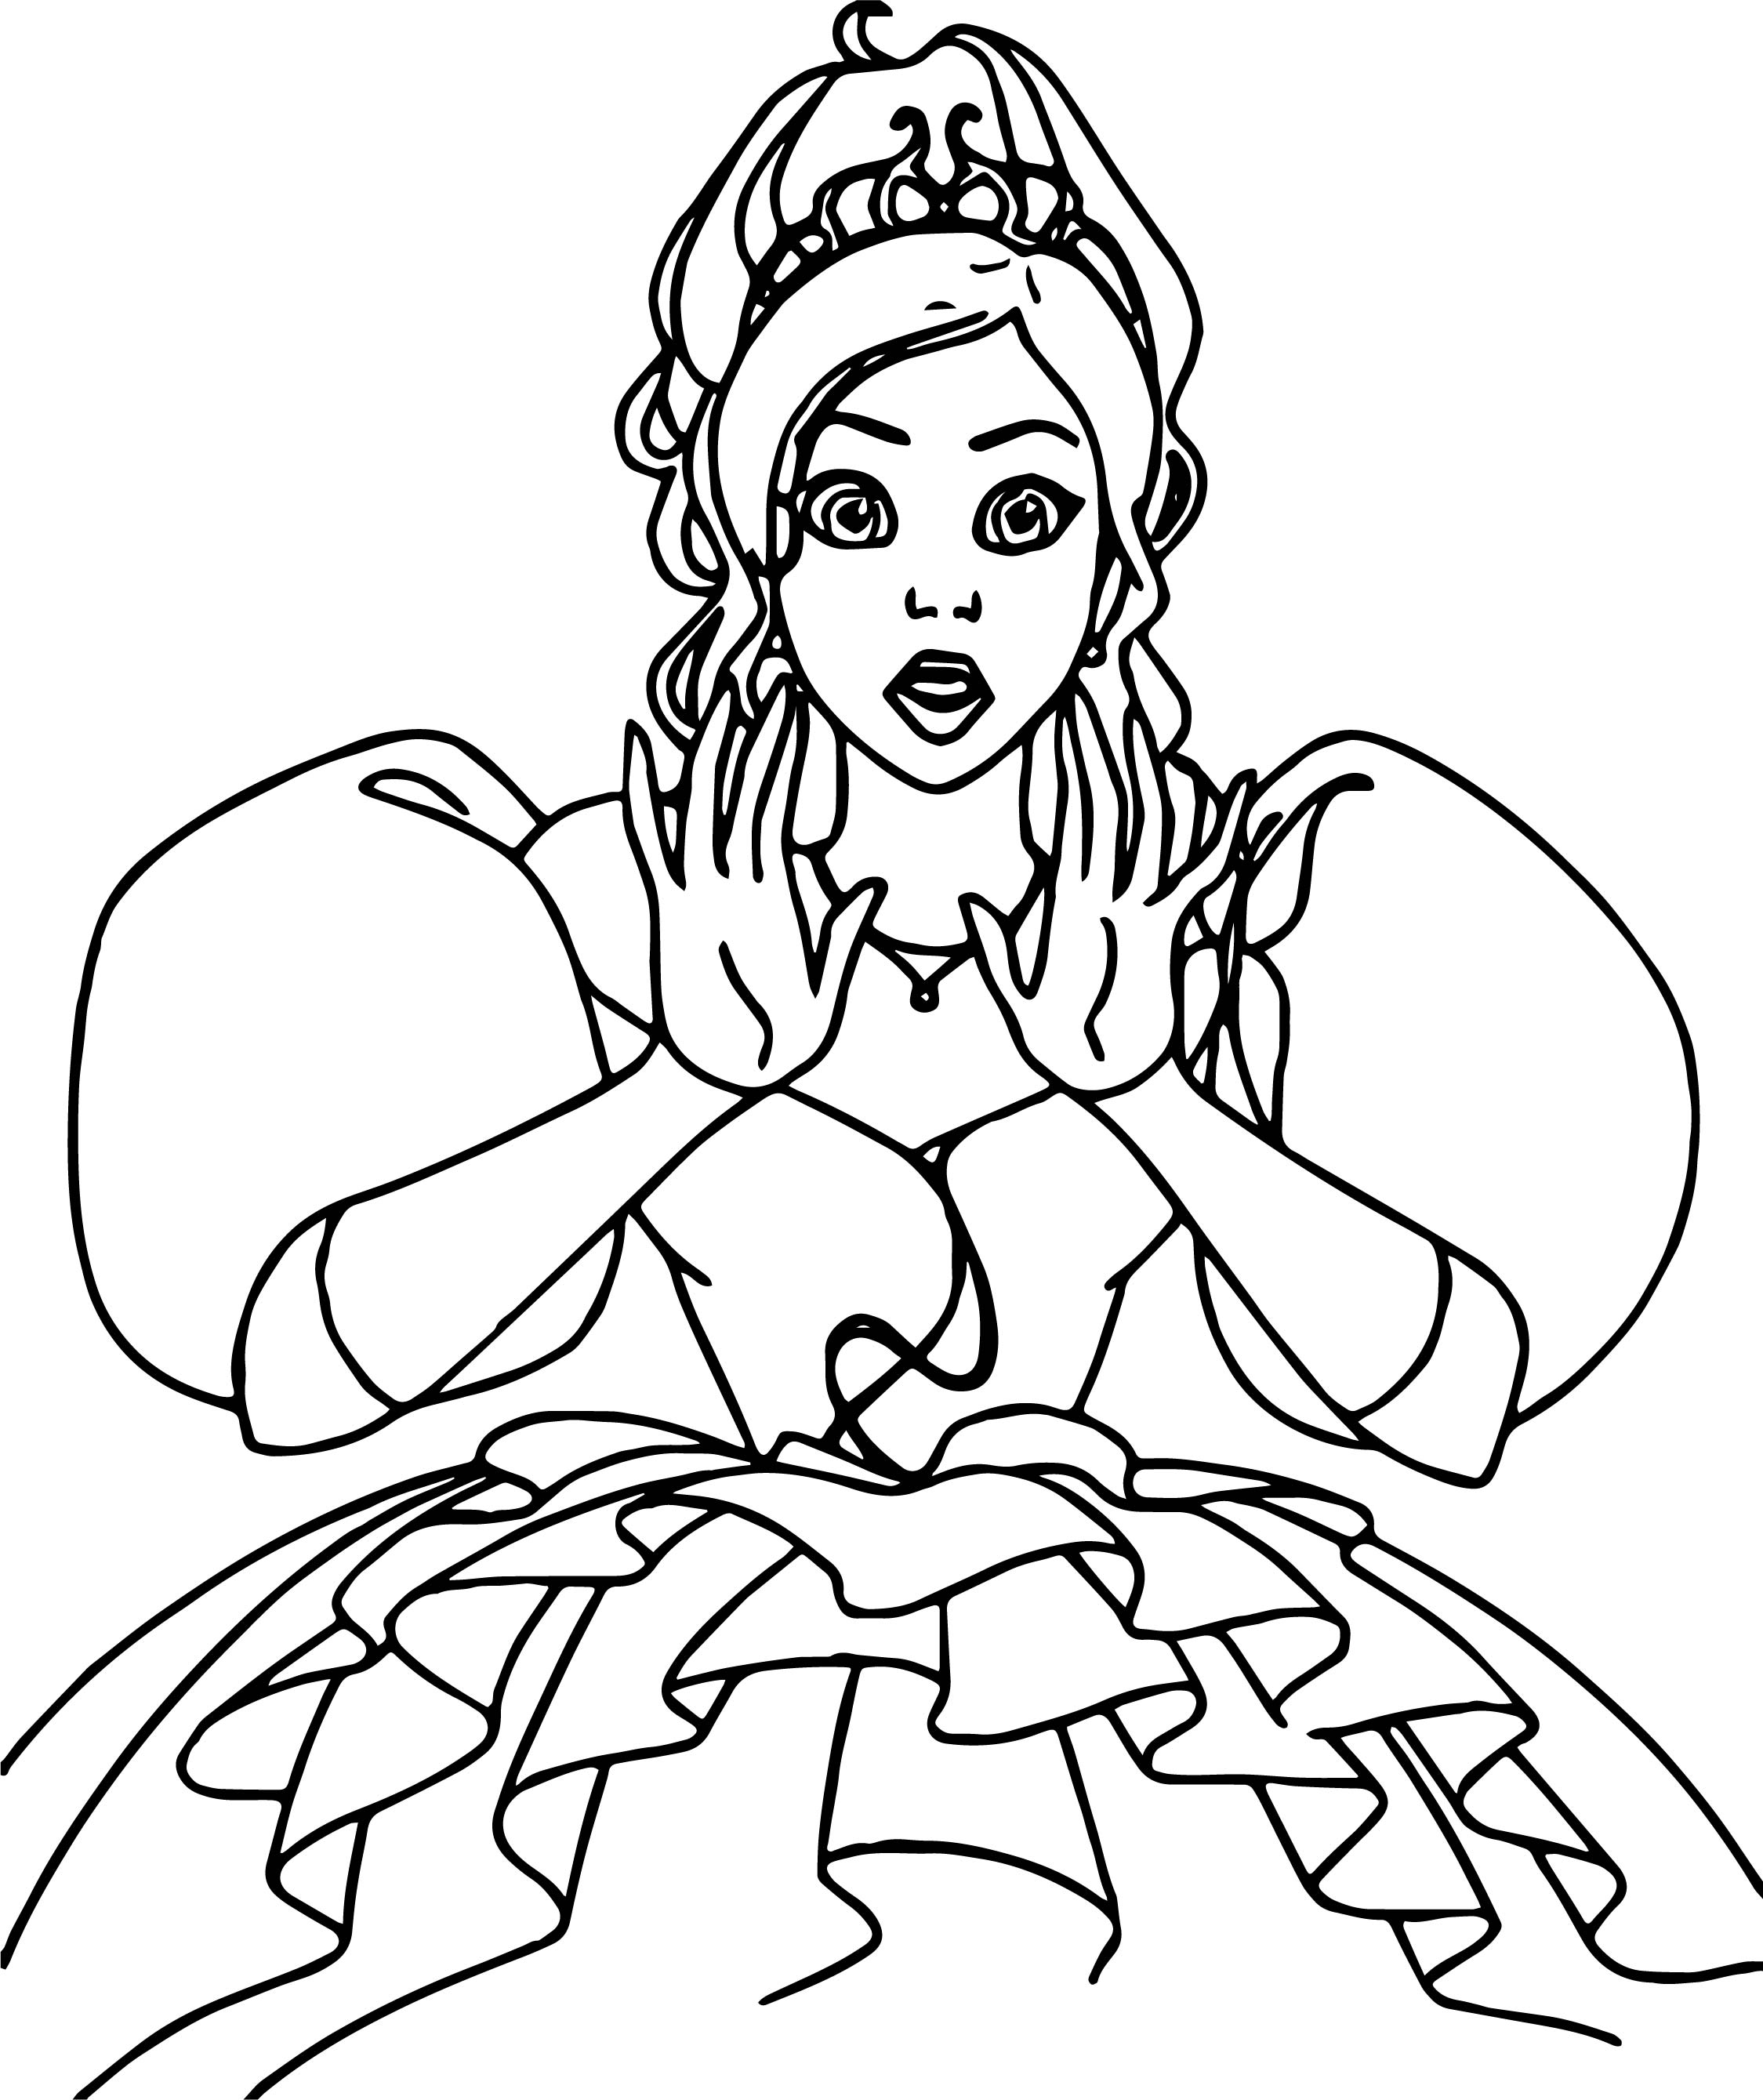 Disney Girl Coloring Pages - Beautiful disney enchanted princess girl shocked coloring pages